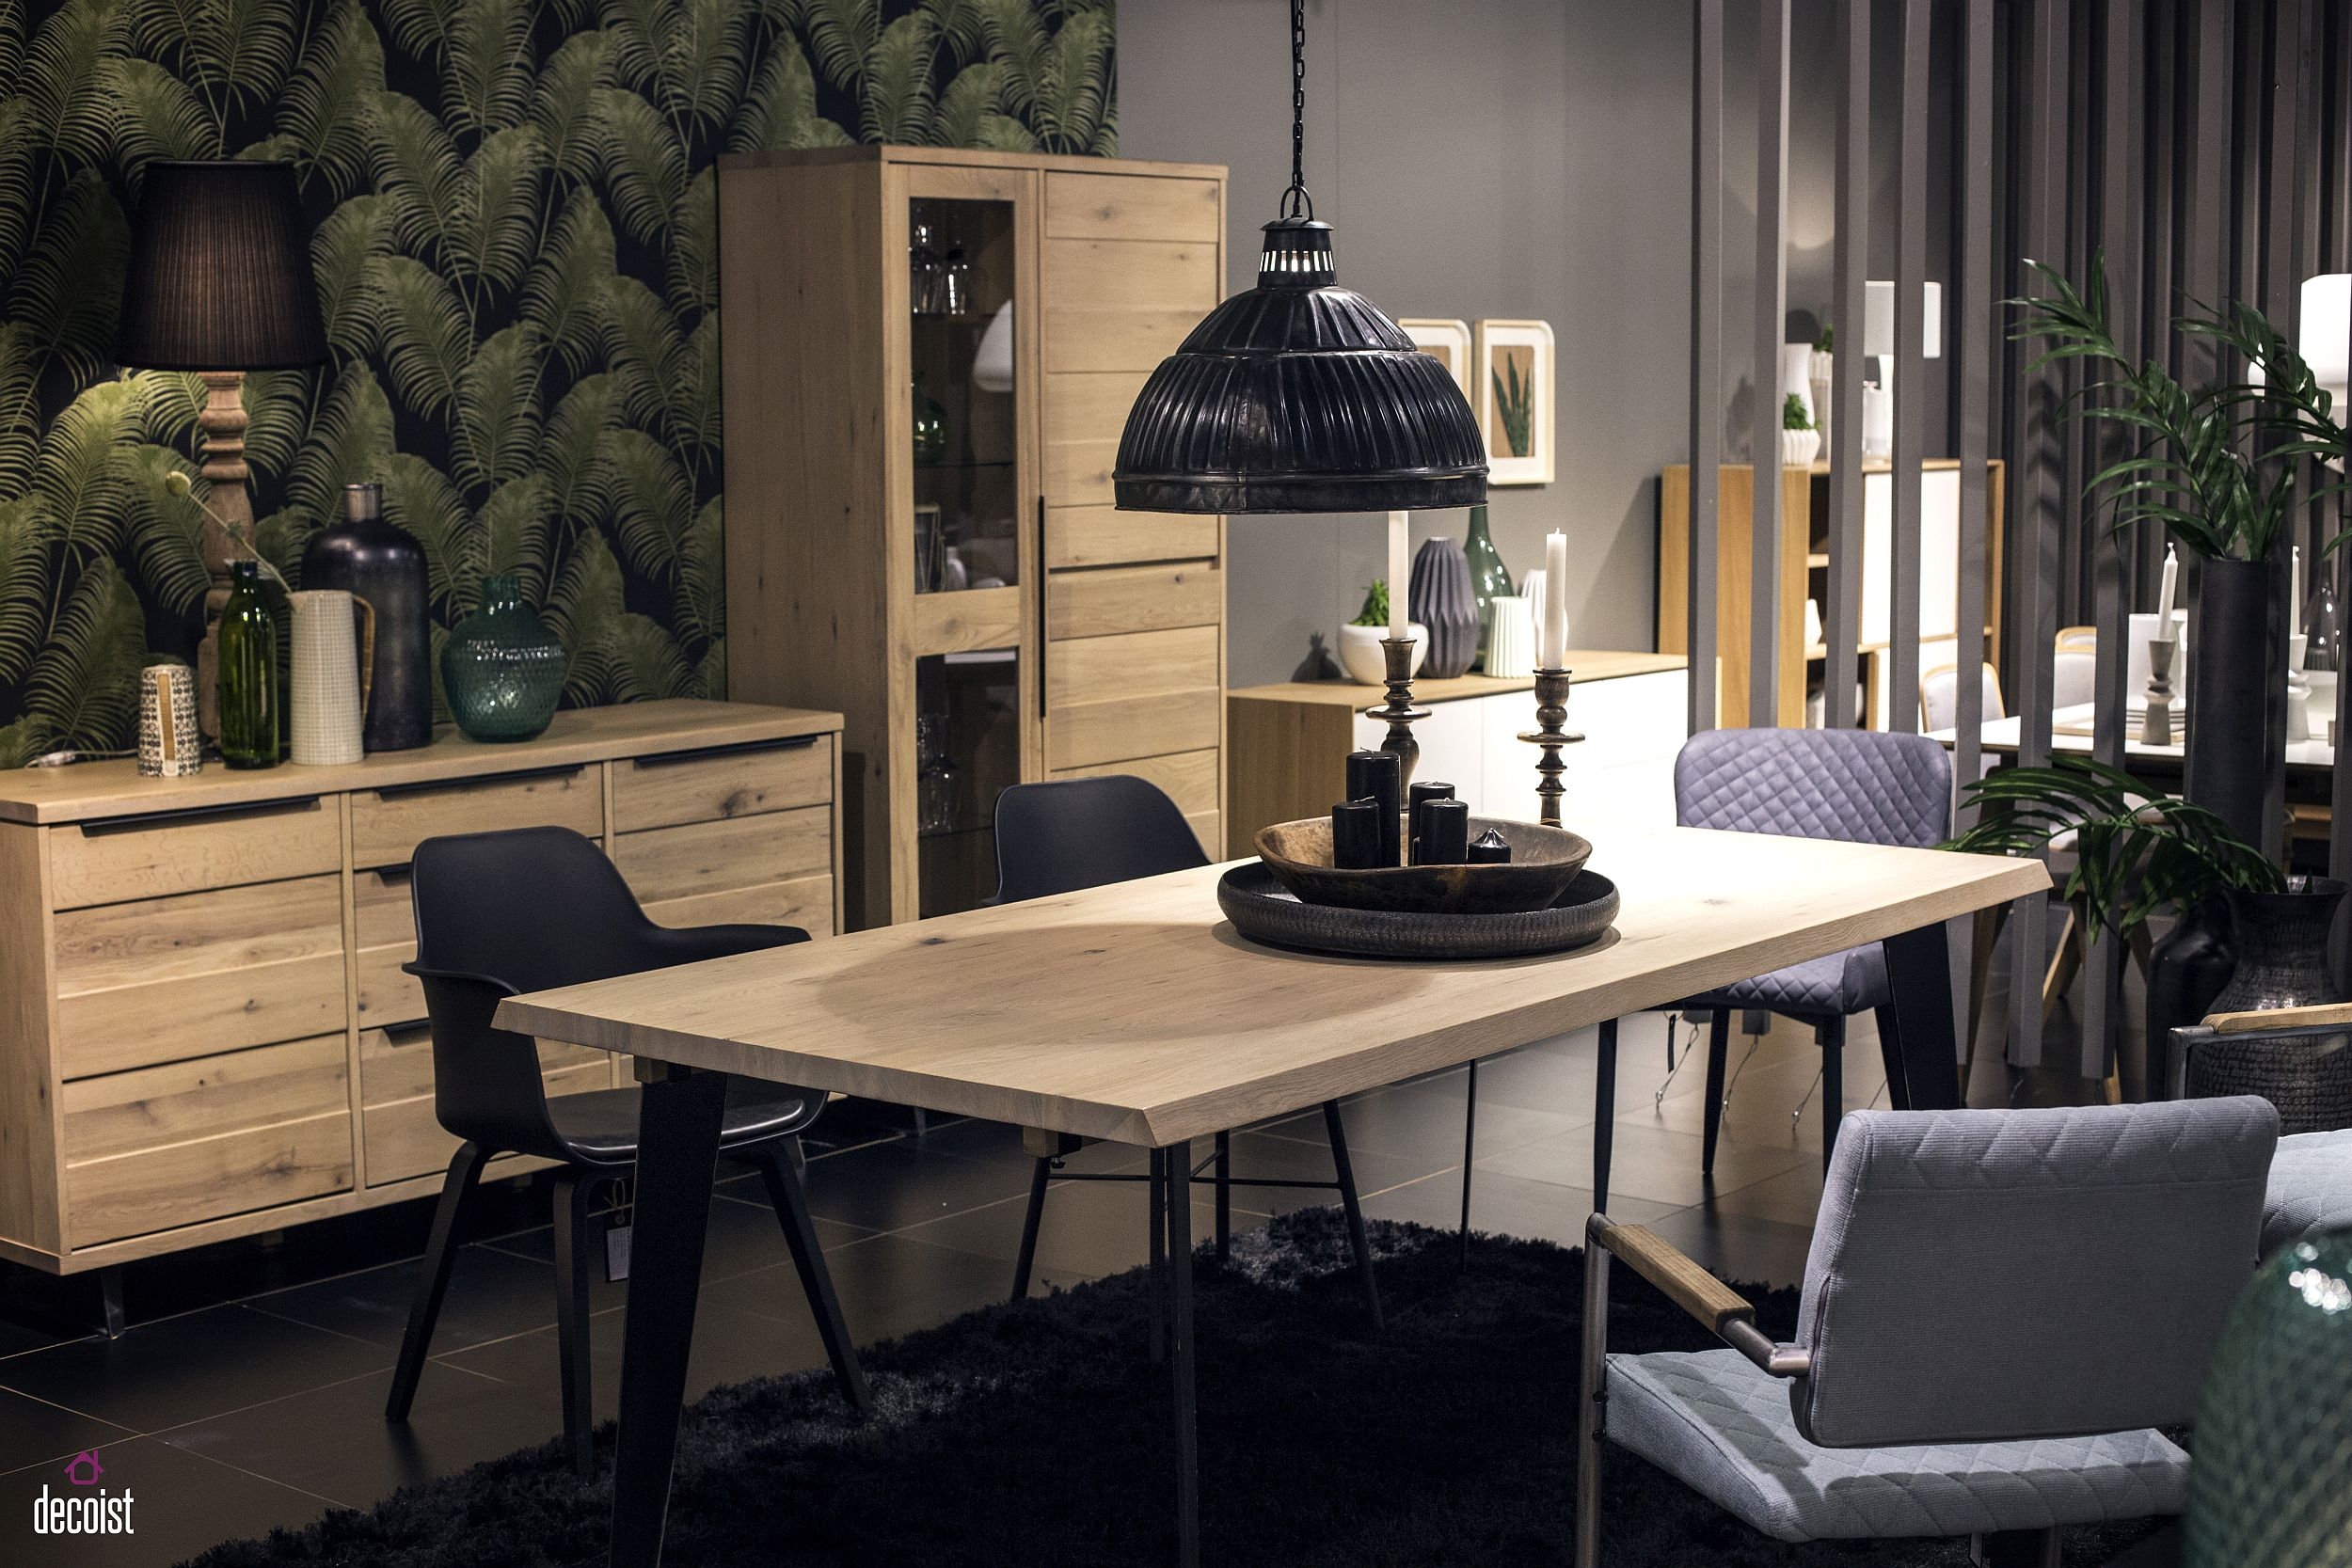 view in gallery - Dining Room Table Black